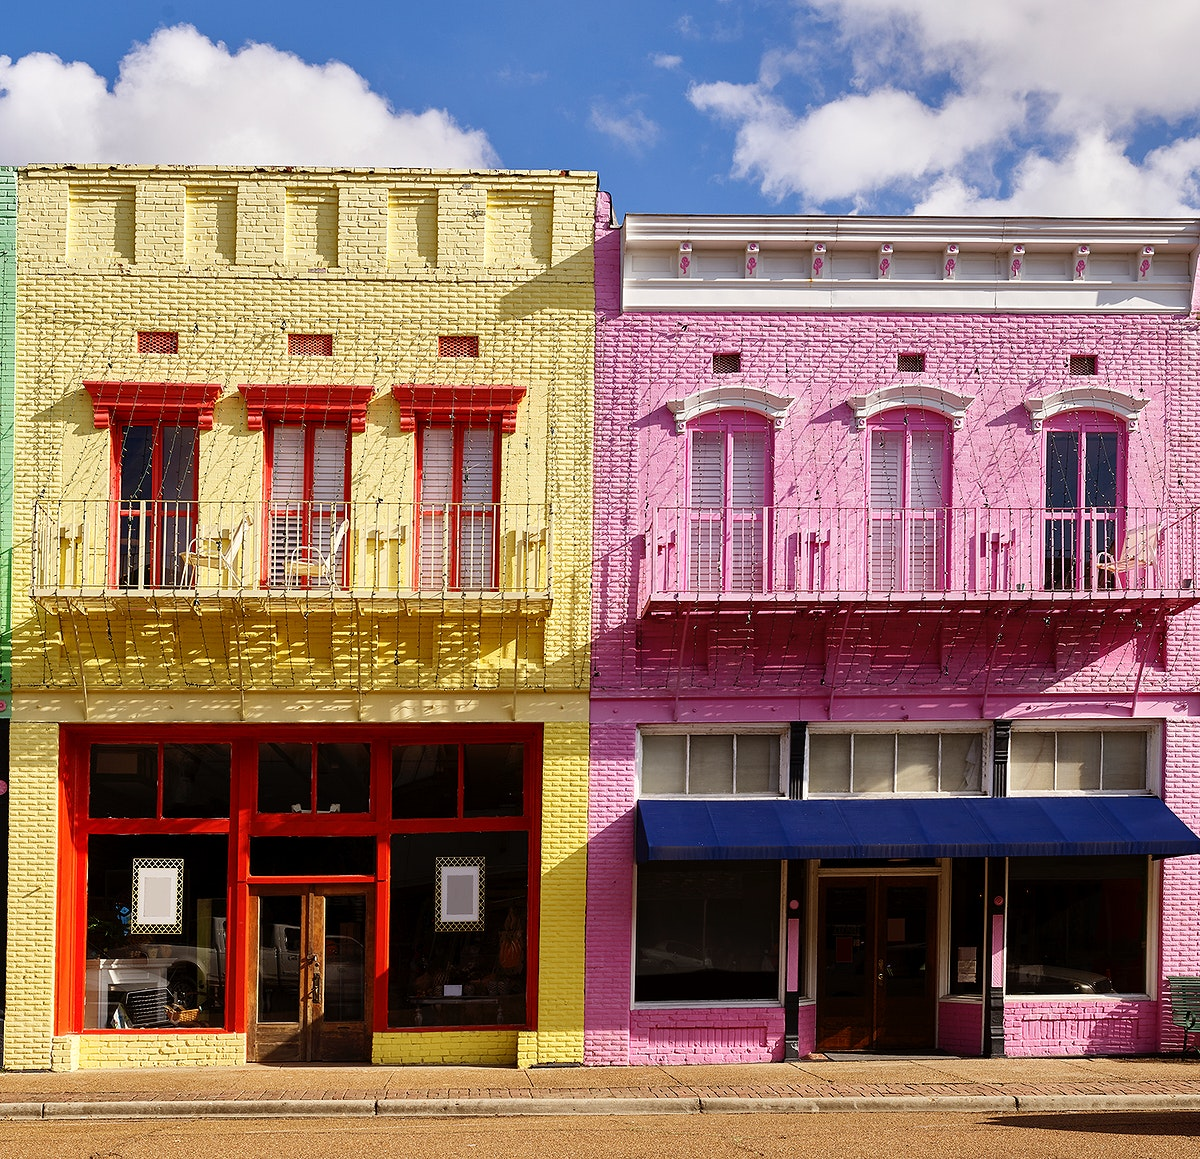 Yazoo City's in bold, Carribeanesque colors. Original image from Carol M. Highsmith's America, Library of Congress…